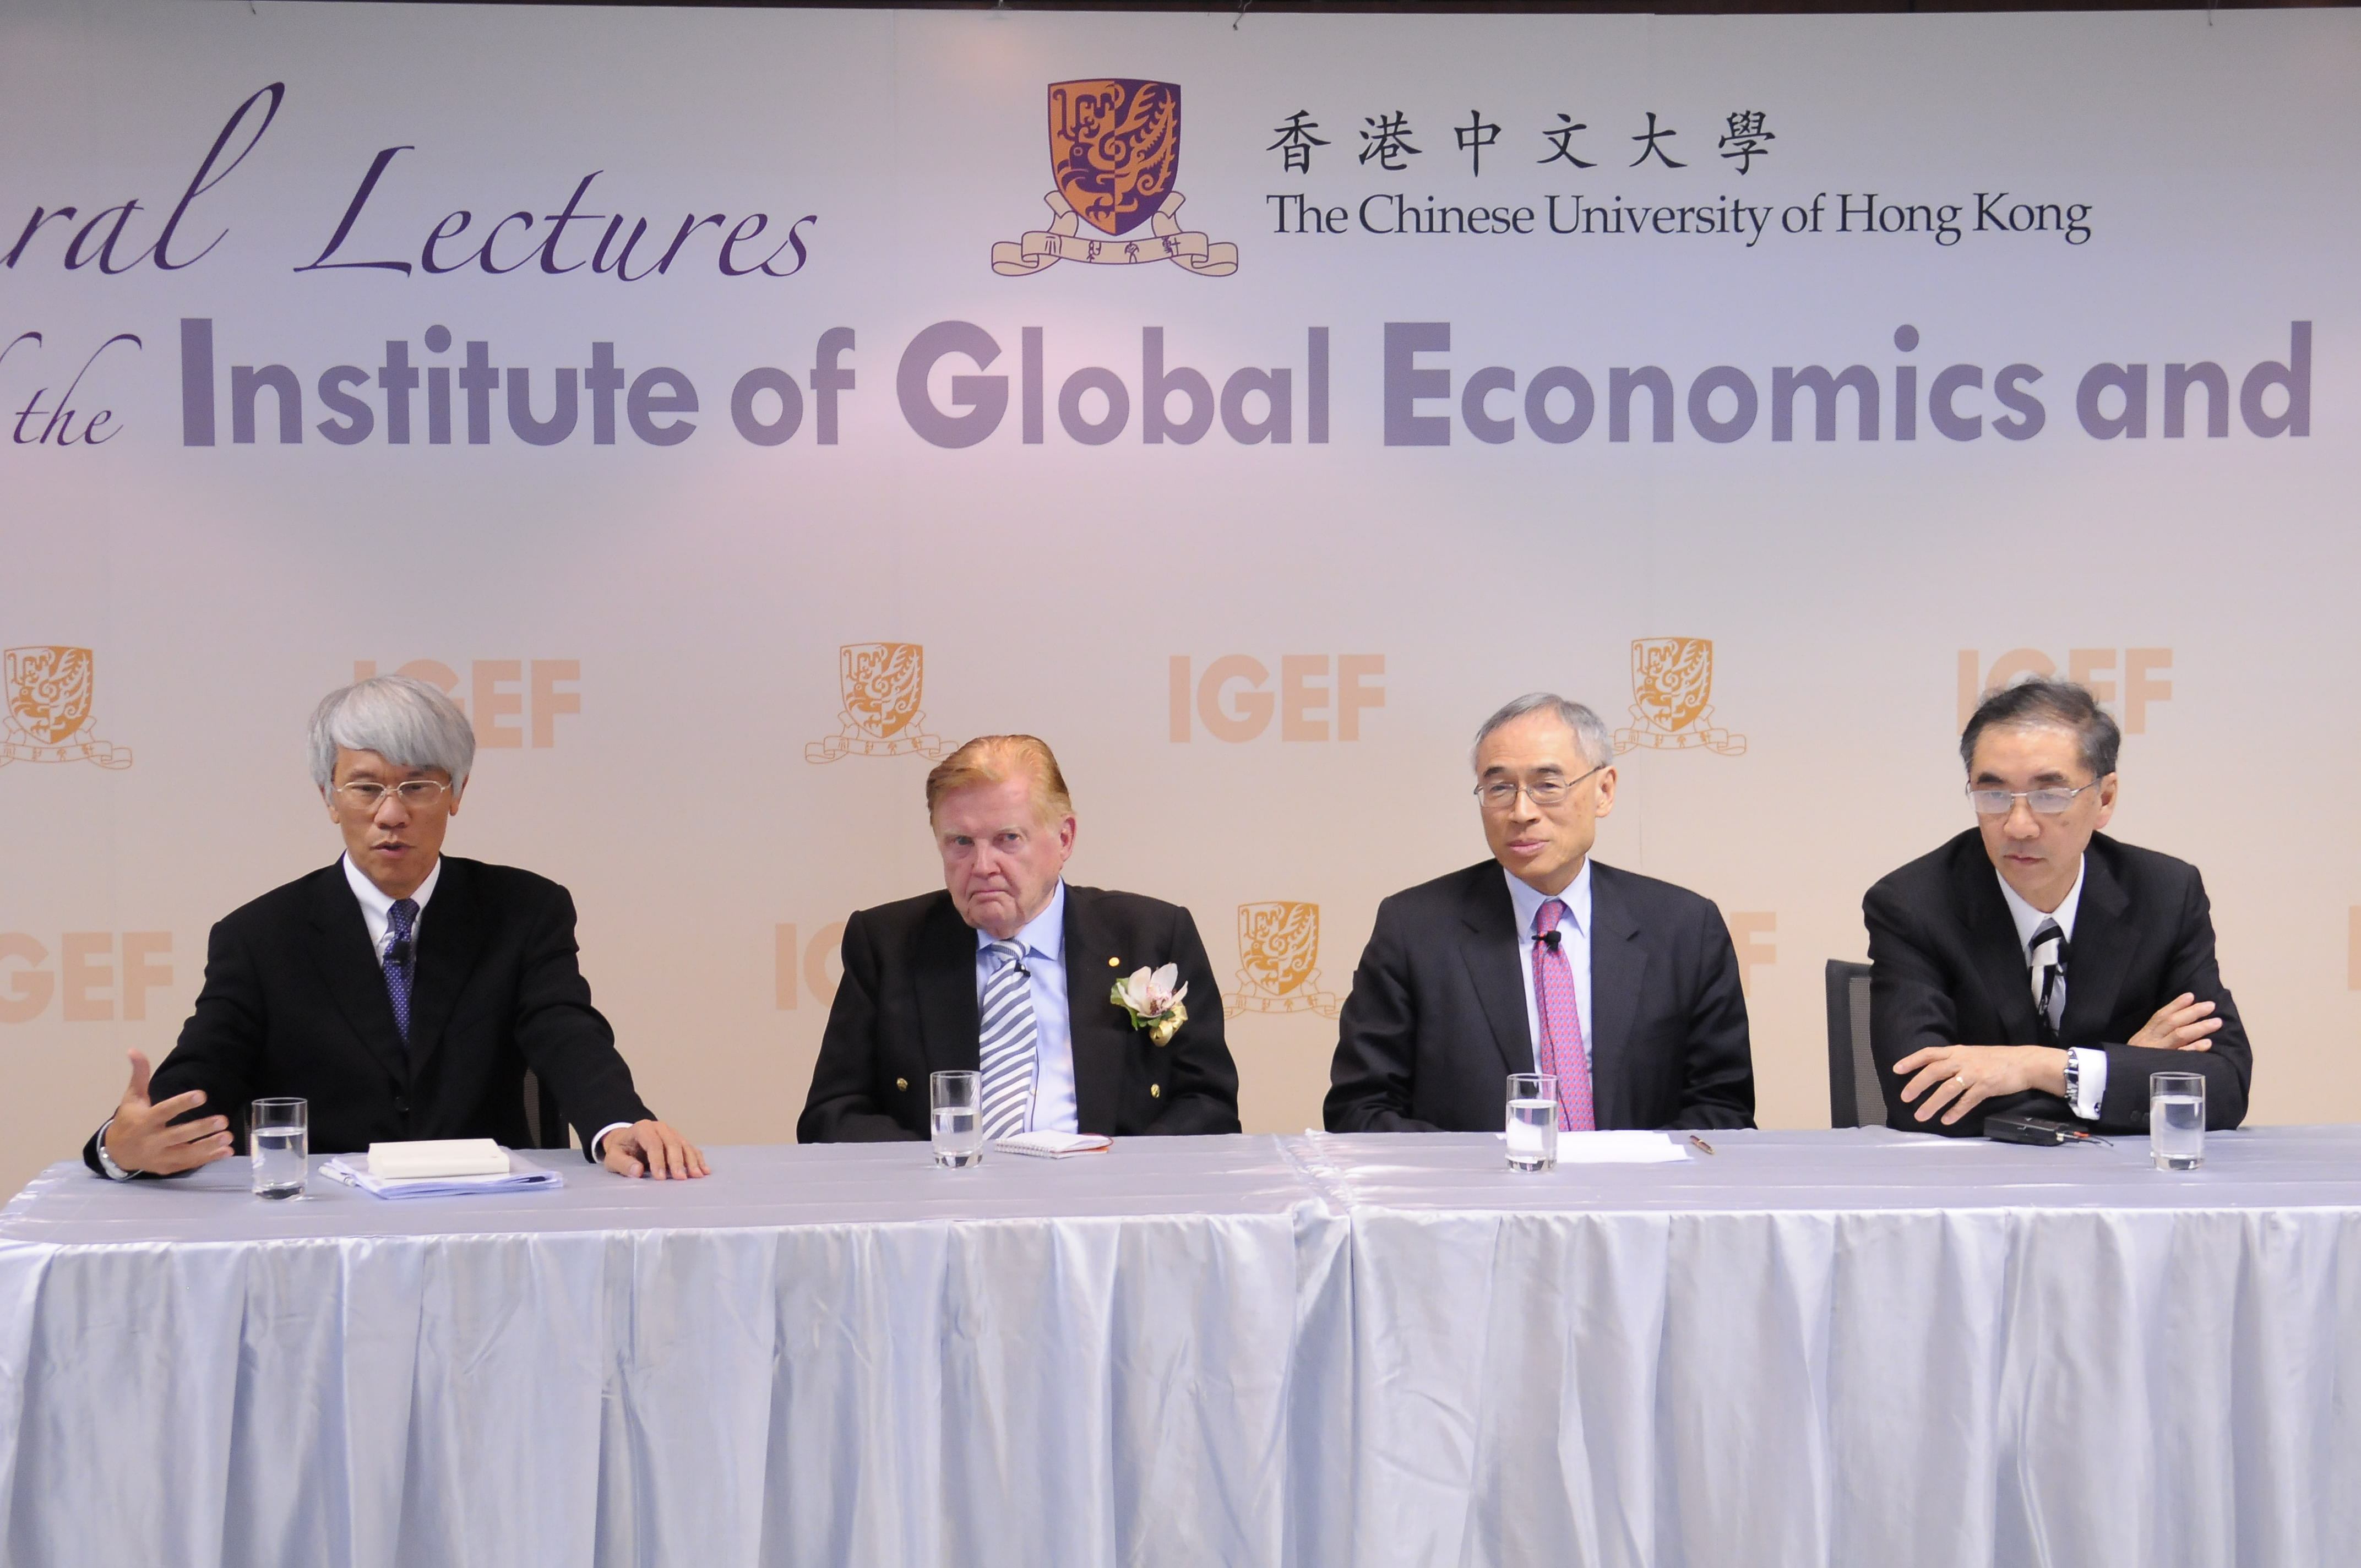 (From left) Prof. Joseph Yam, Prof. Robert A. Mundell, Prof. Lawrence J. Lau and Prof. Leslie Young, member of the Institute of Global Economics and Finance.